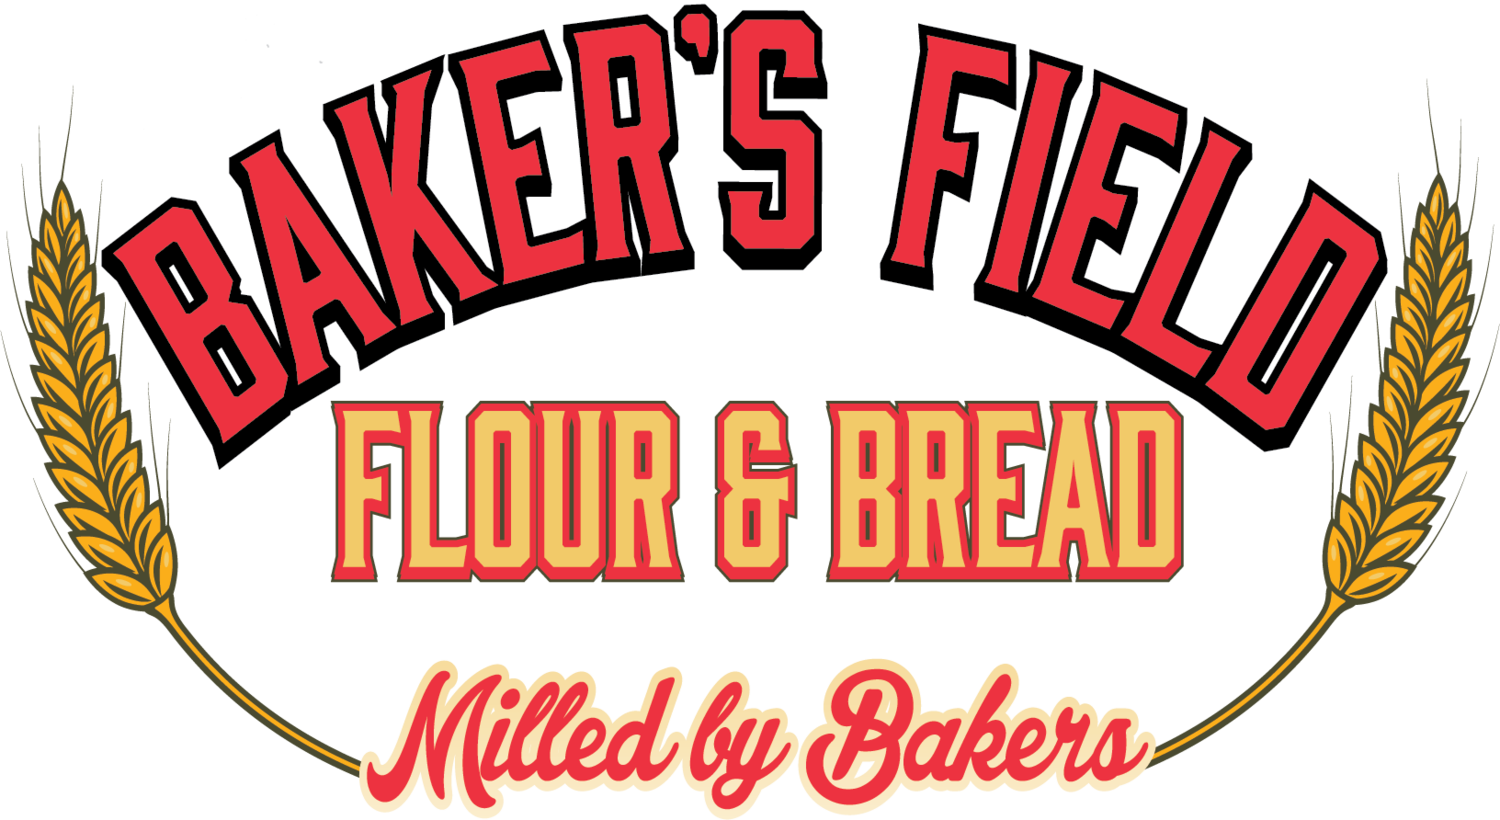 Baker's Field Flour and Bread